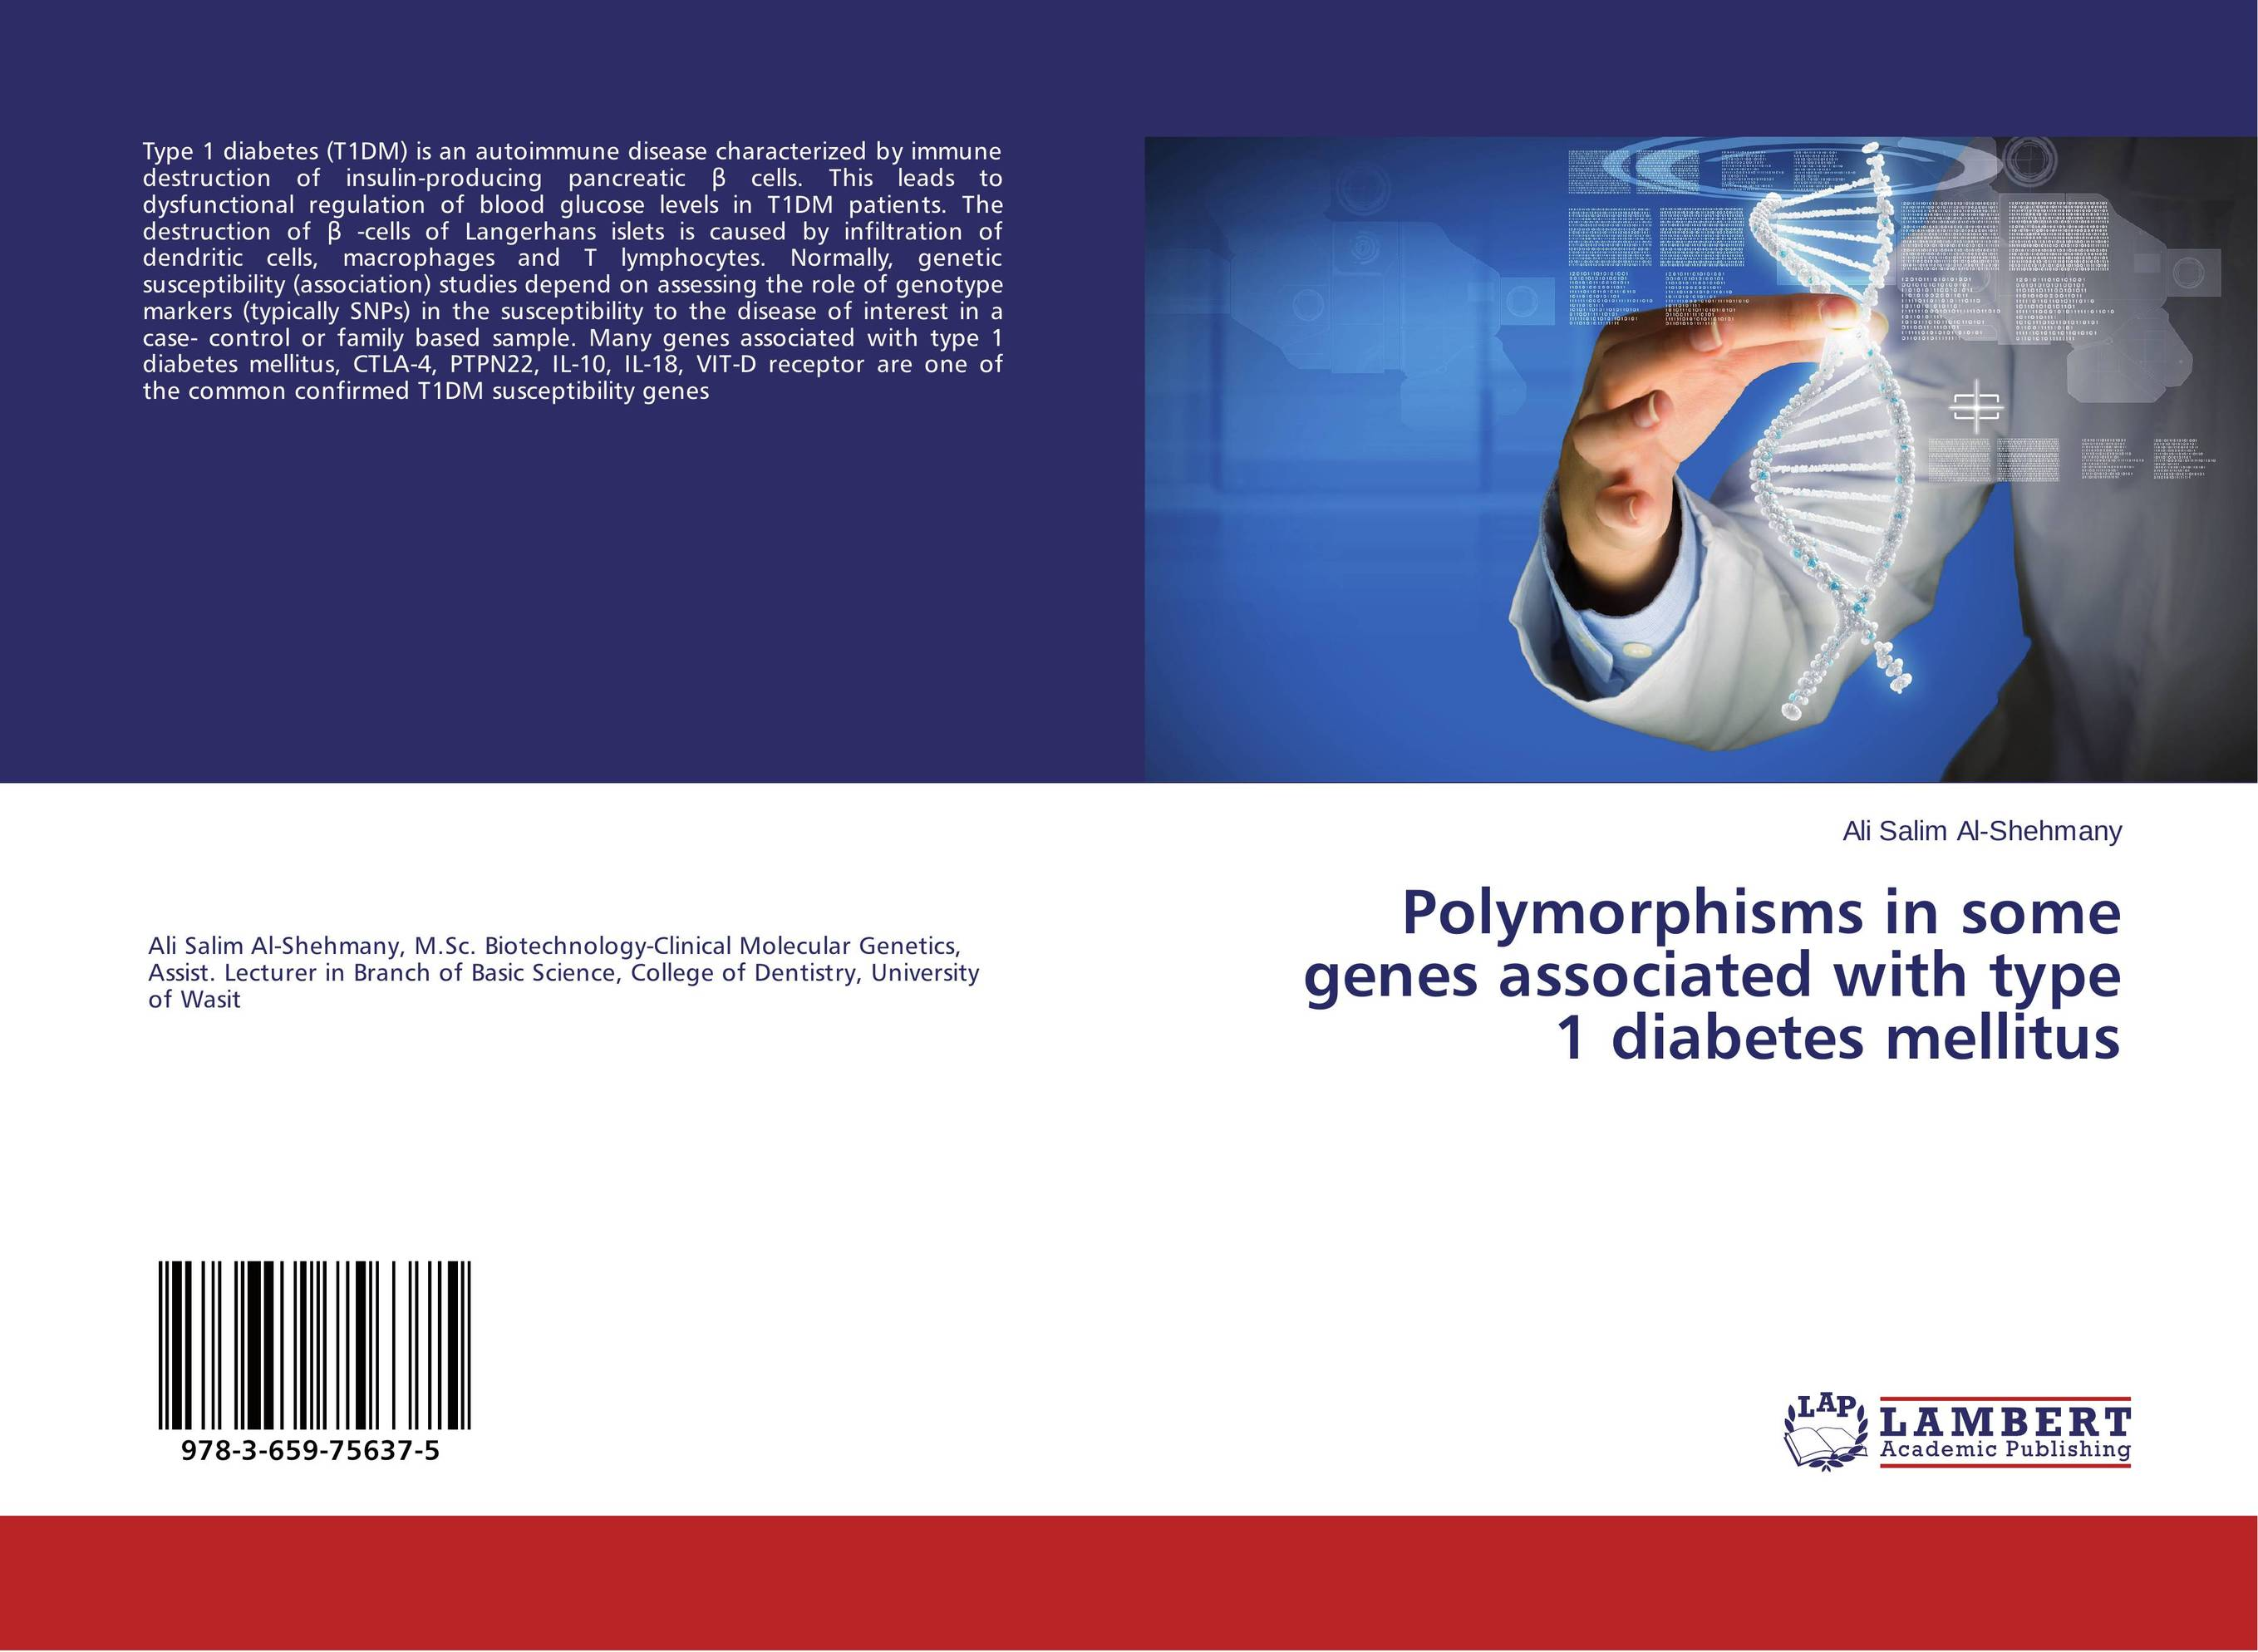 Polymorphisms in some genes associated with type 1 diabetes mellitus the destruction of tilted arc – documents